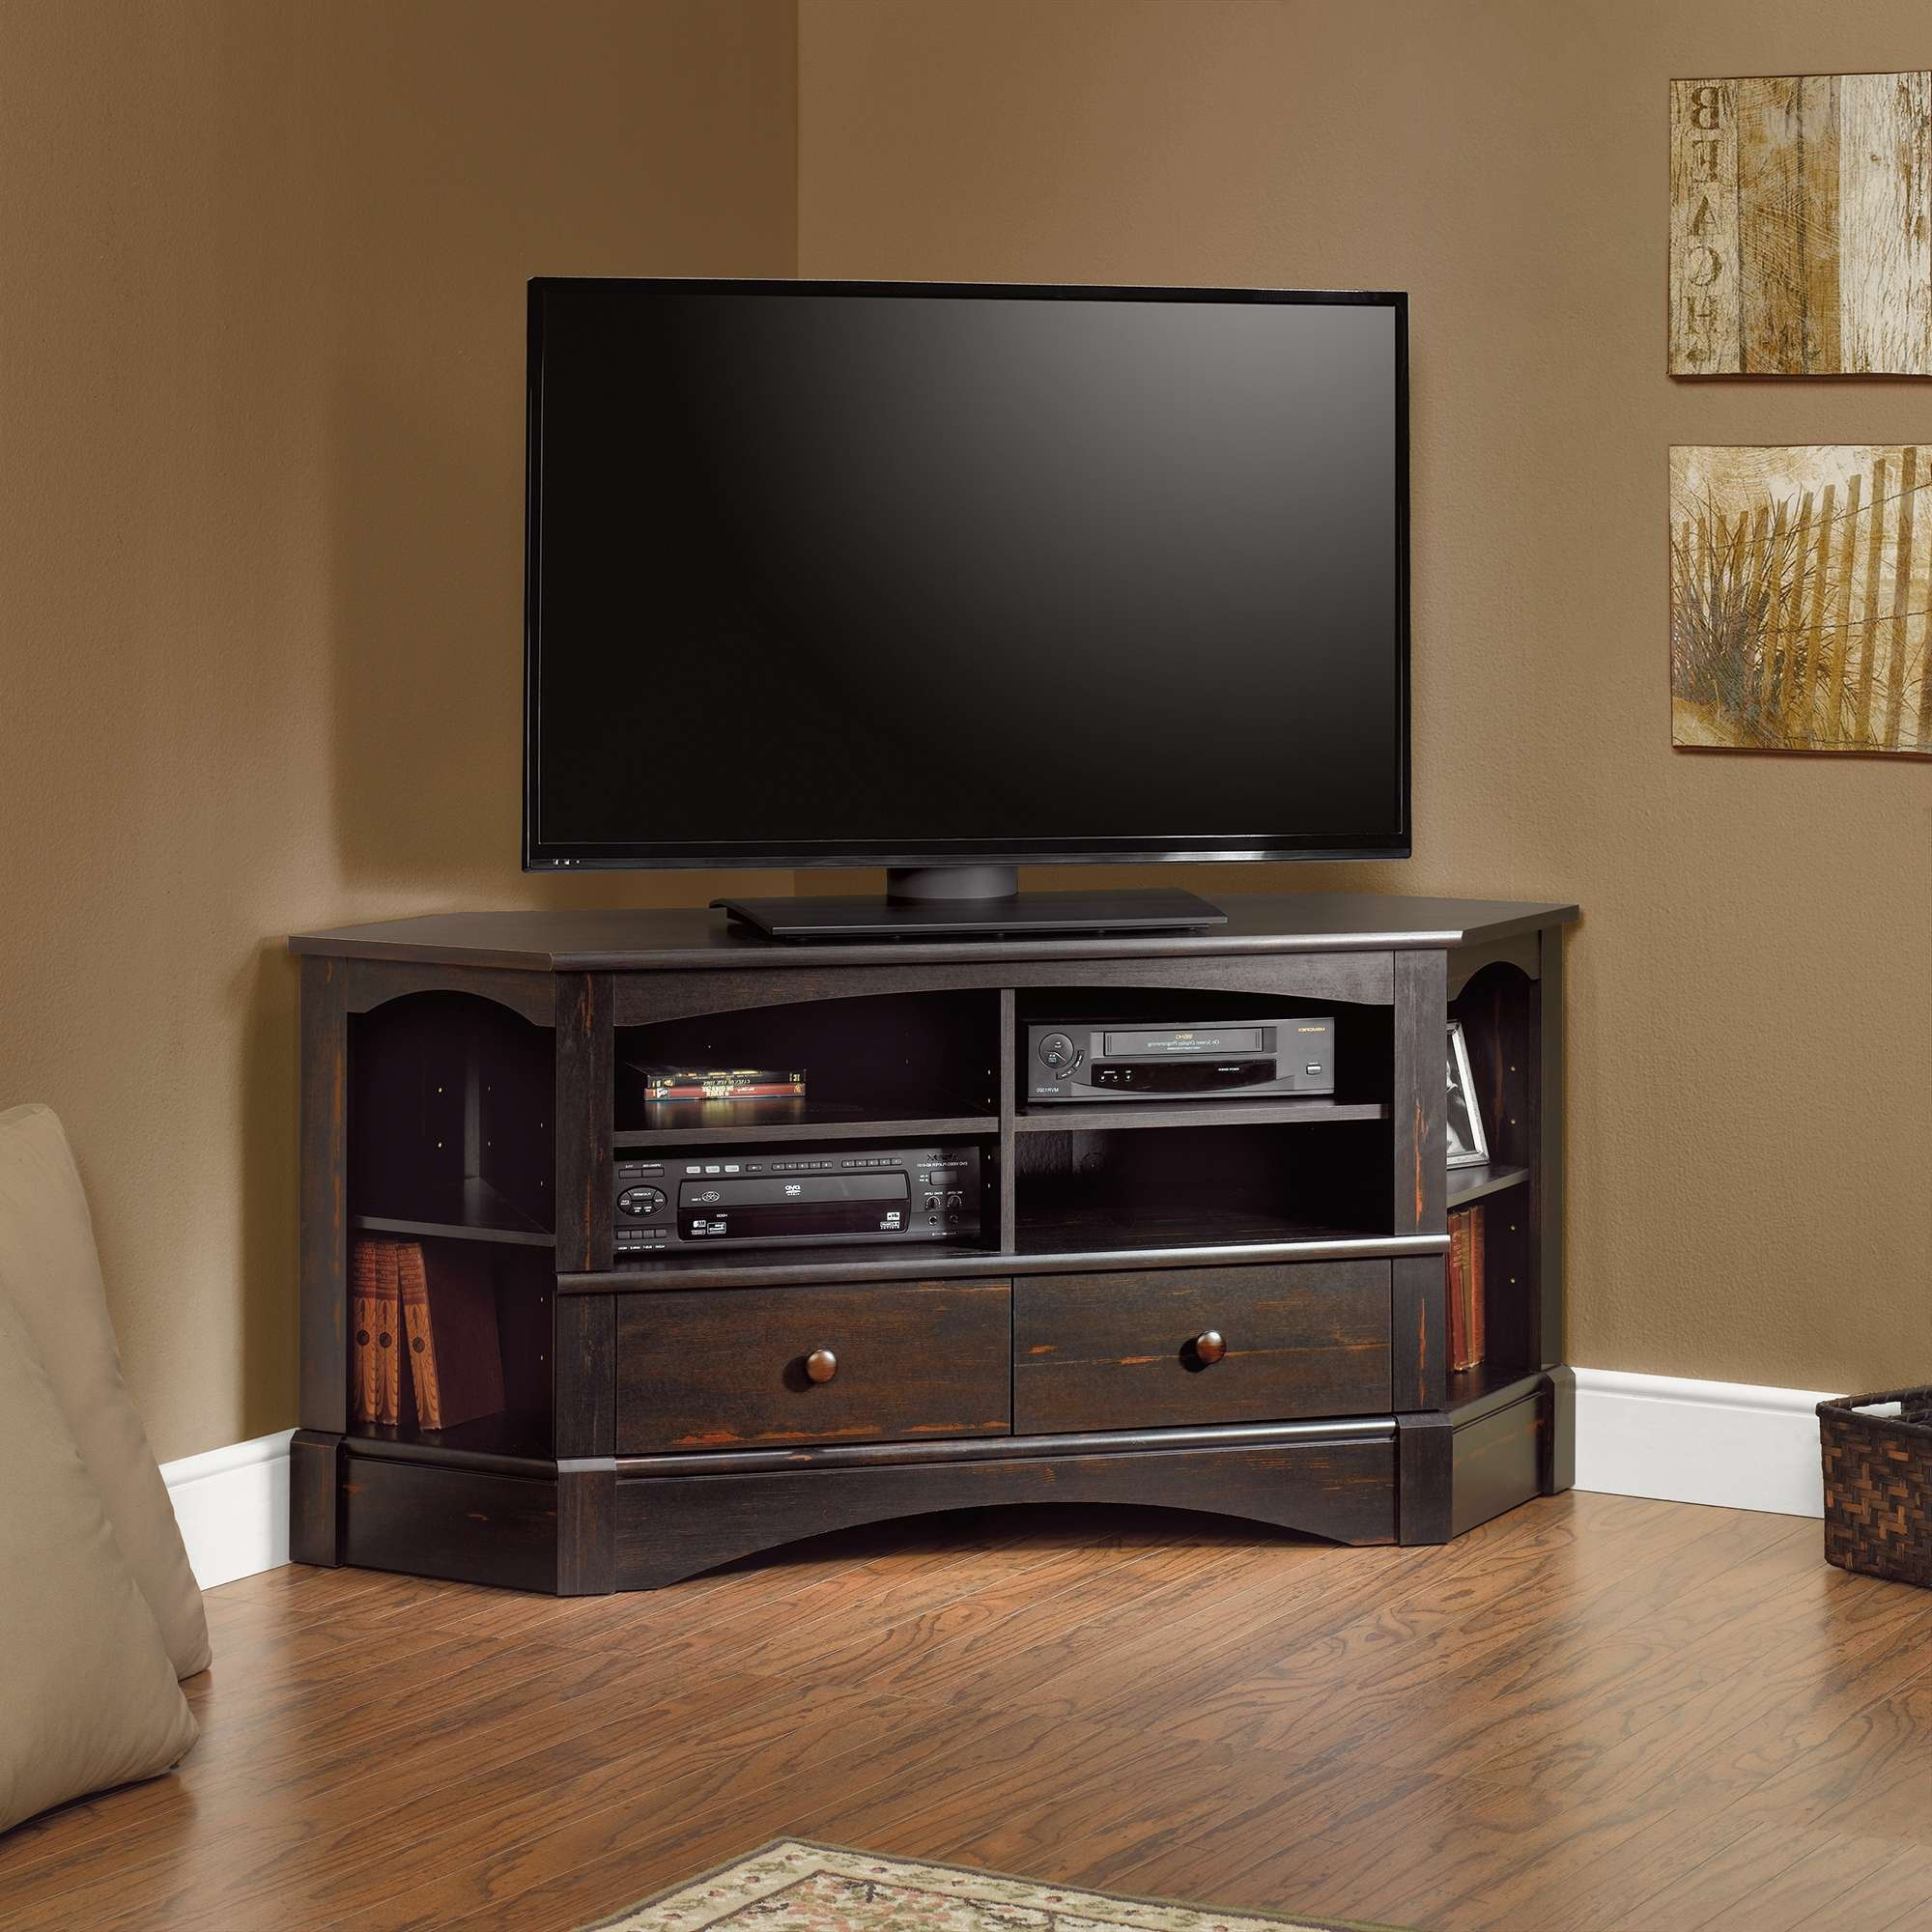 Corner Tv Stands For Flat Screen Tvs With Regard To Corner Tv Cabinets For Flat Screen (View 16 of 20)